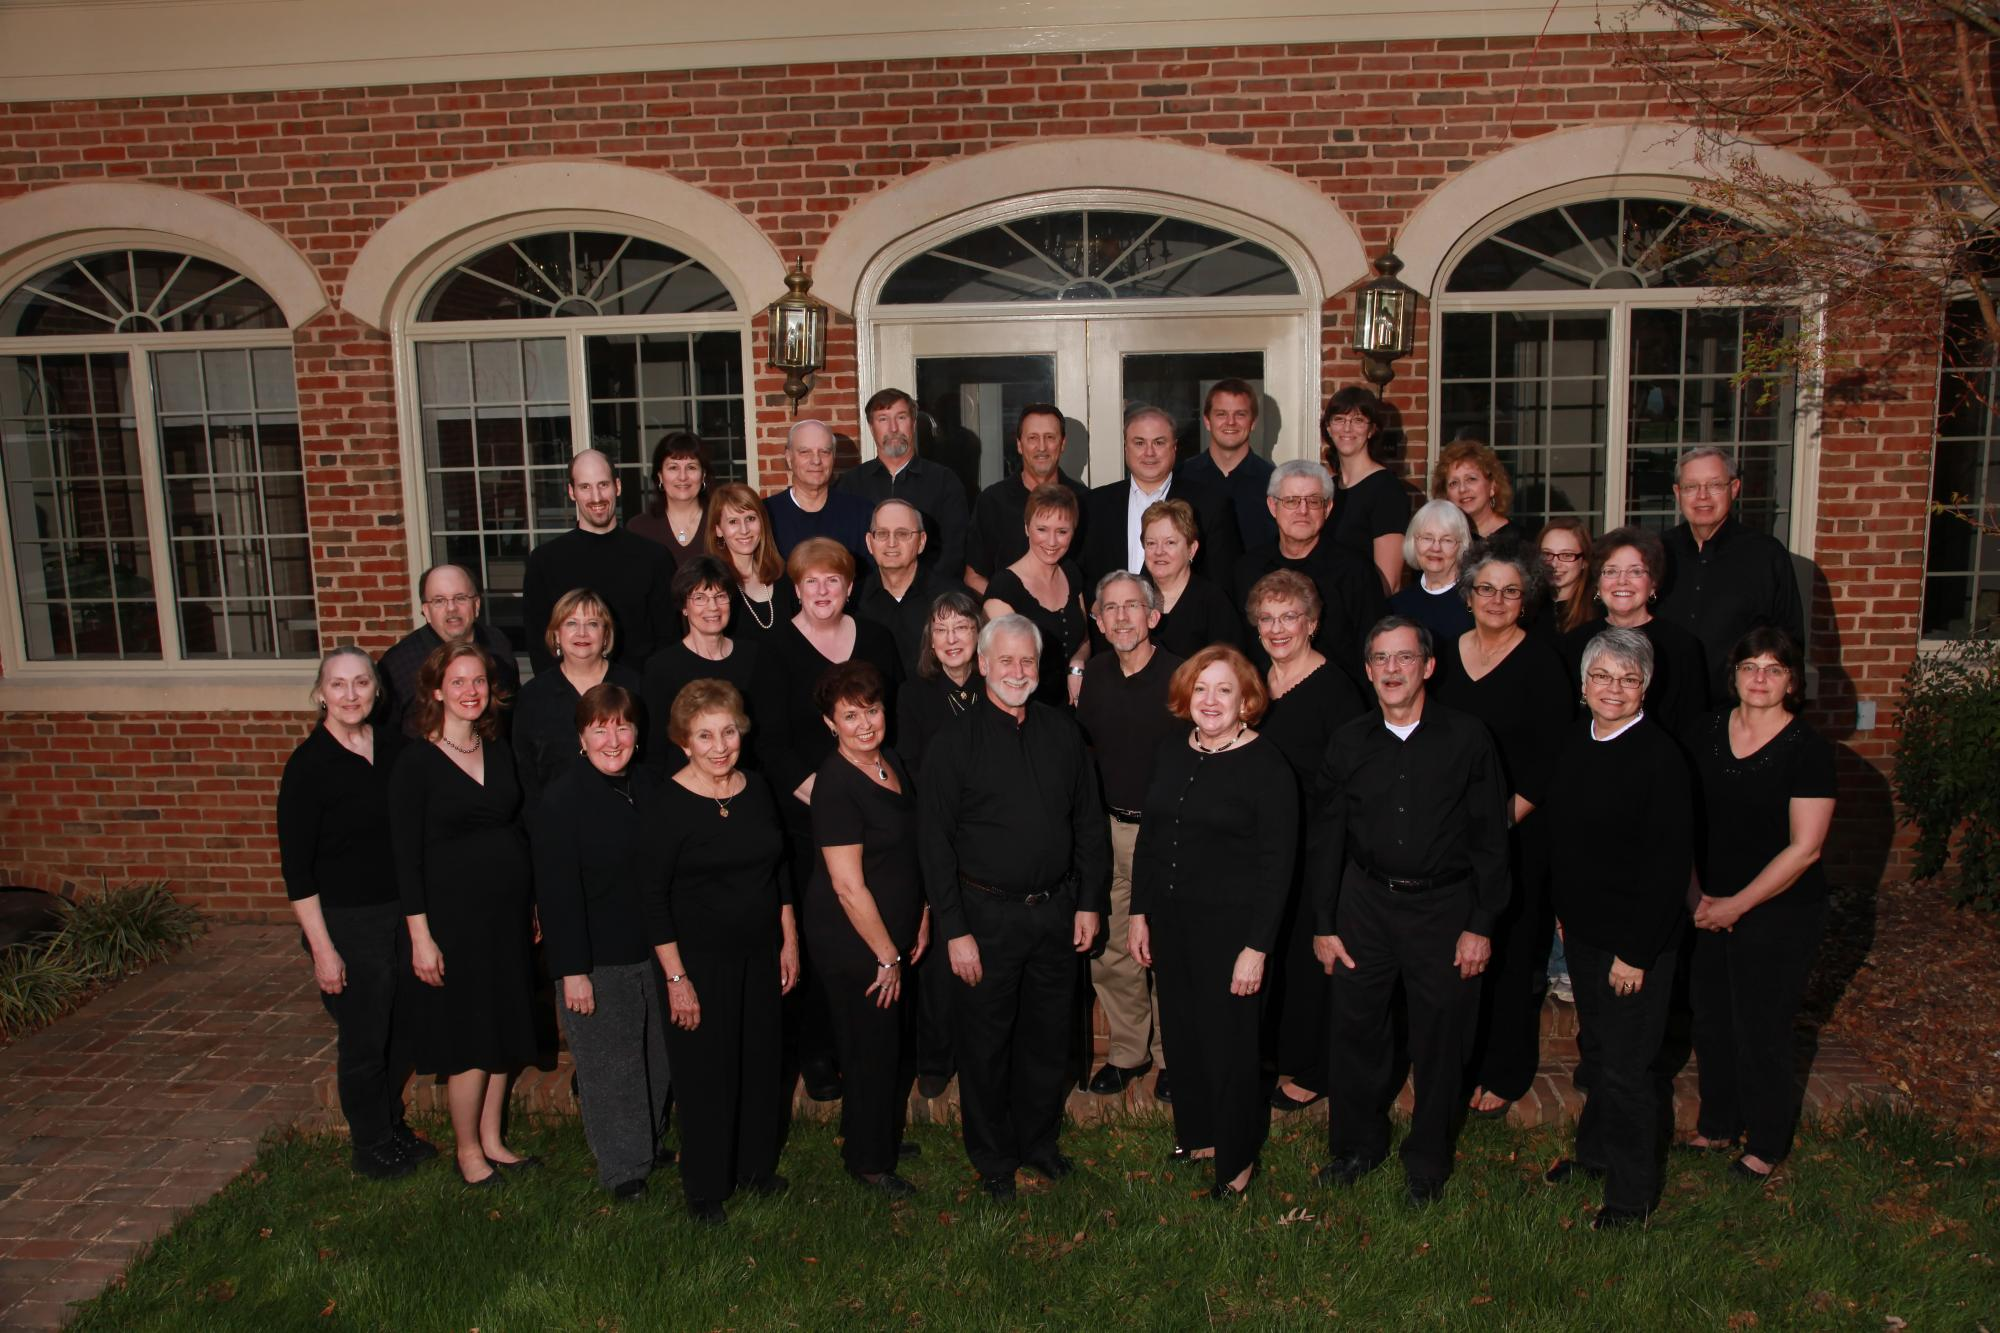 2011 Central Virginia Masterworks Chorale